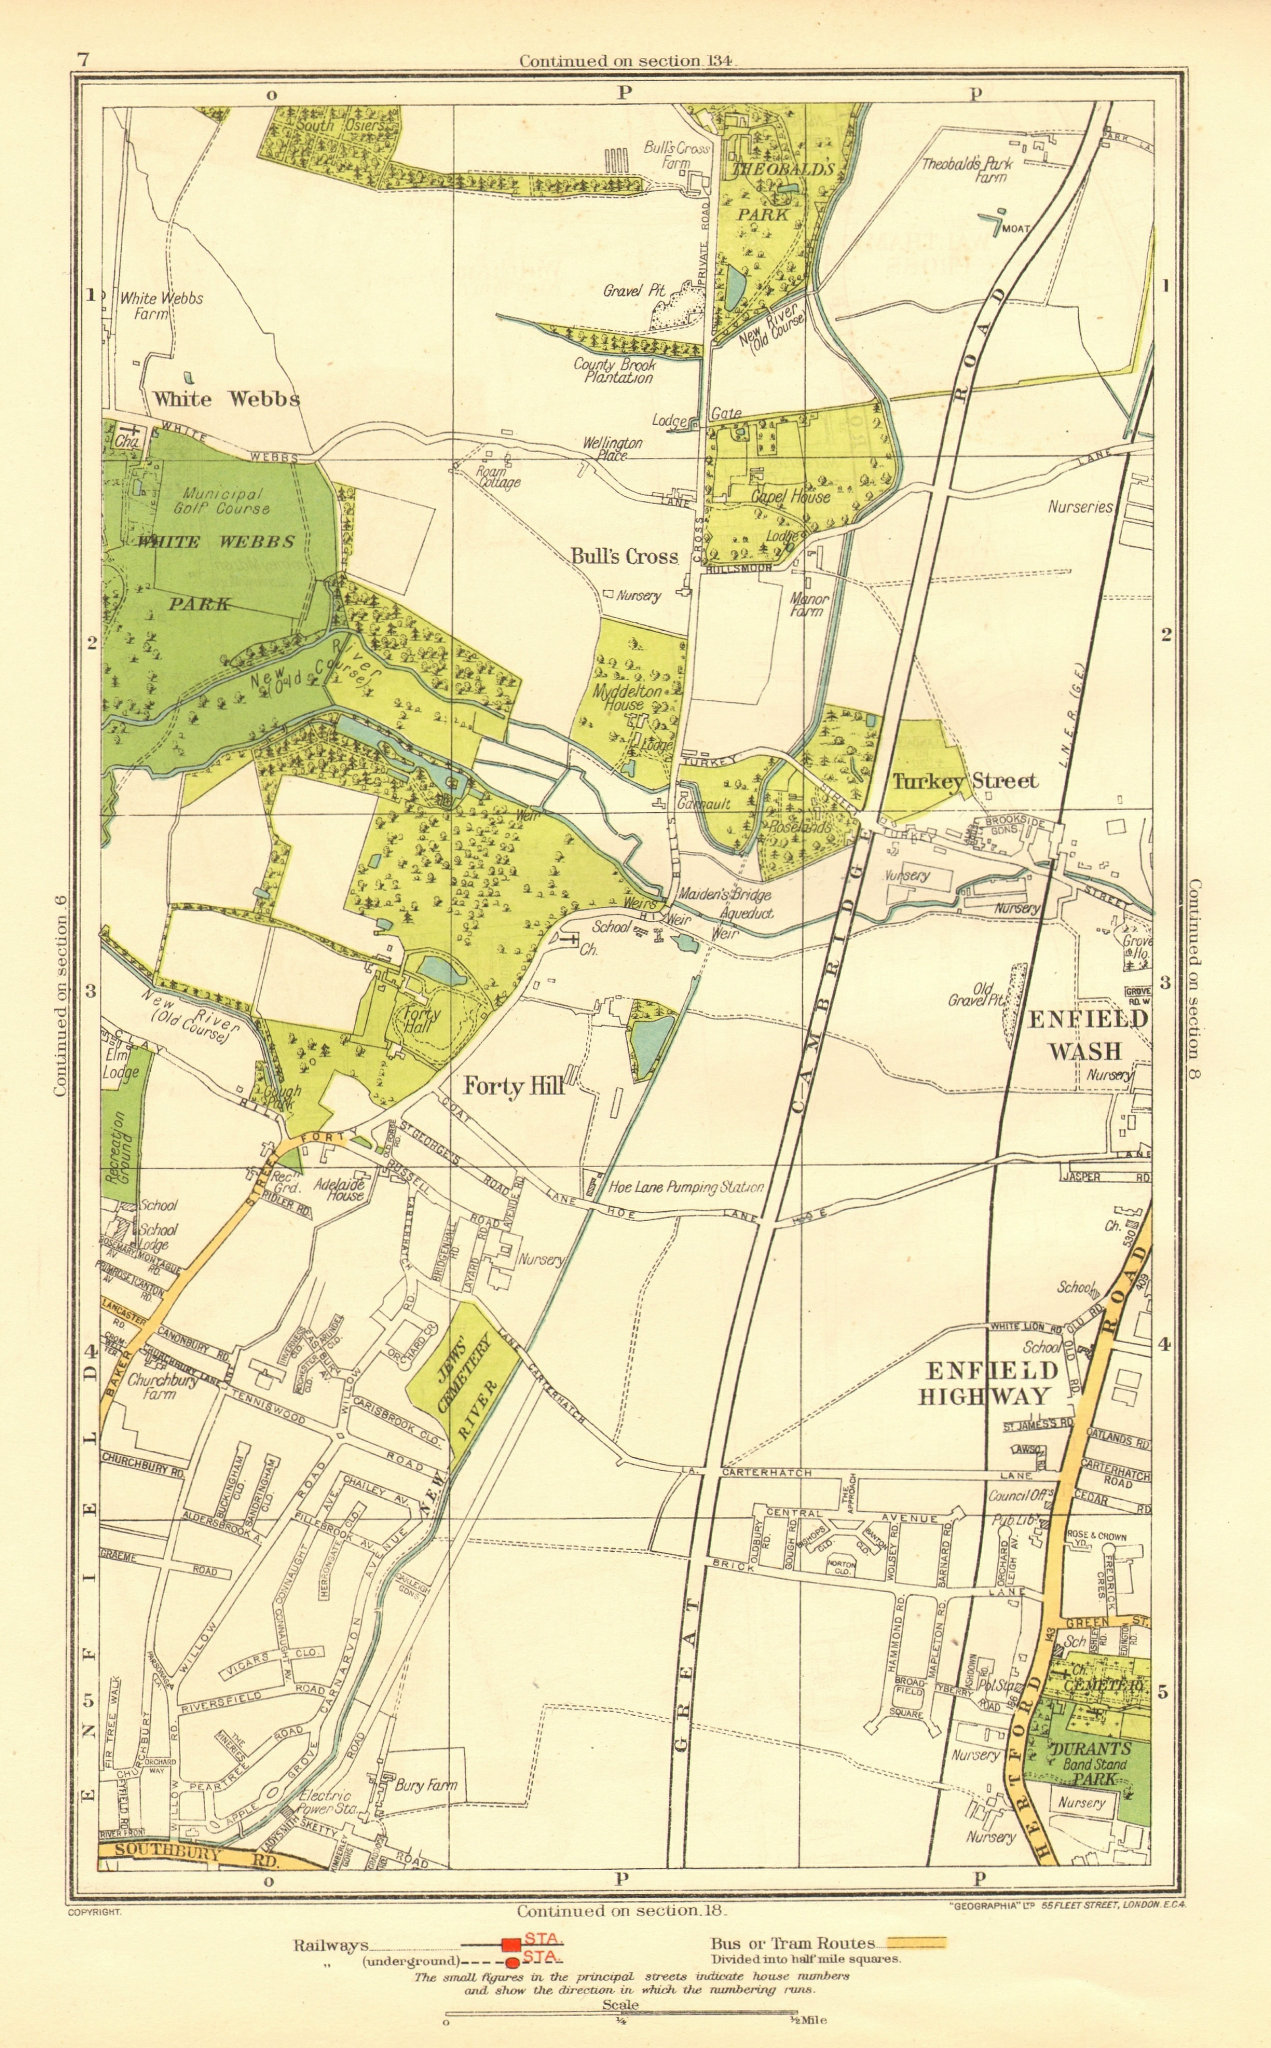 Associate Product ENFIELD. Bull's Cross Enfield Wash Forty Hill White Webbs Freezy Water 1937 map